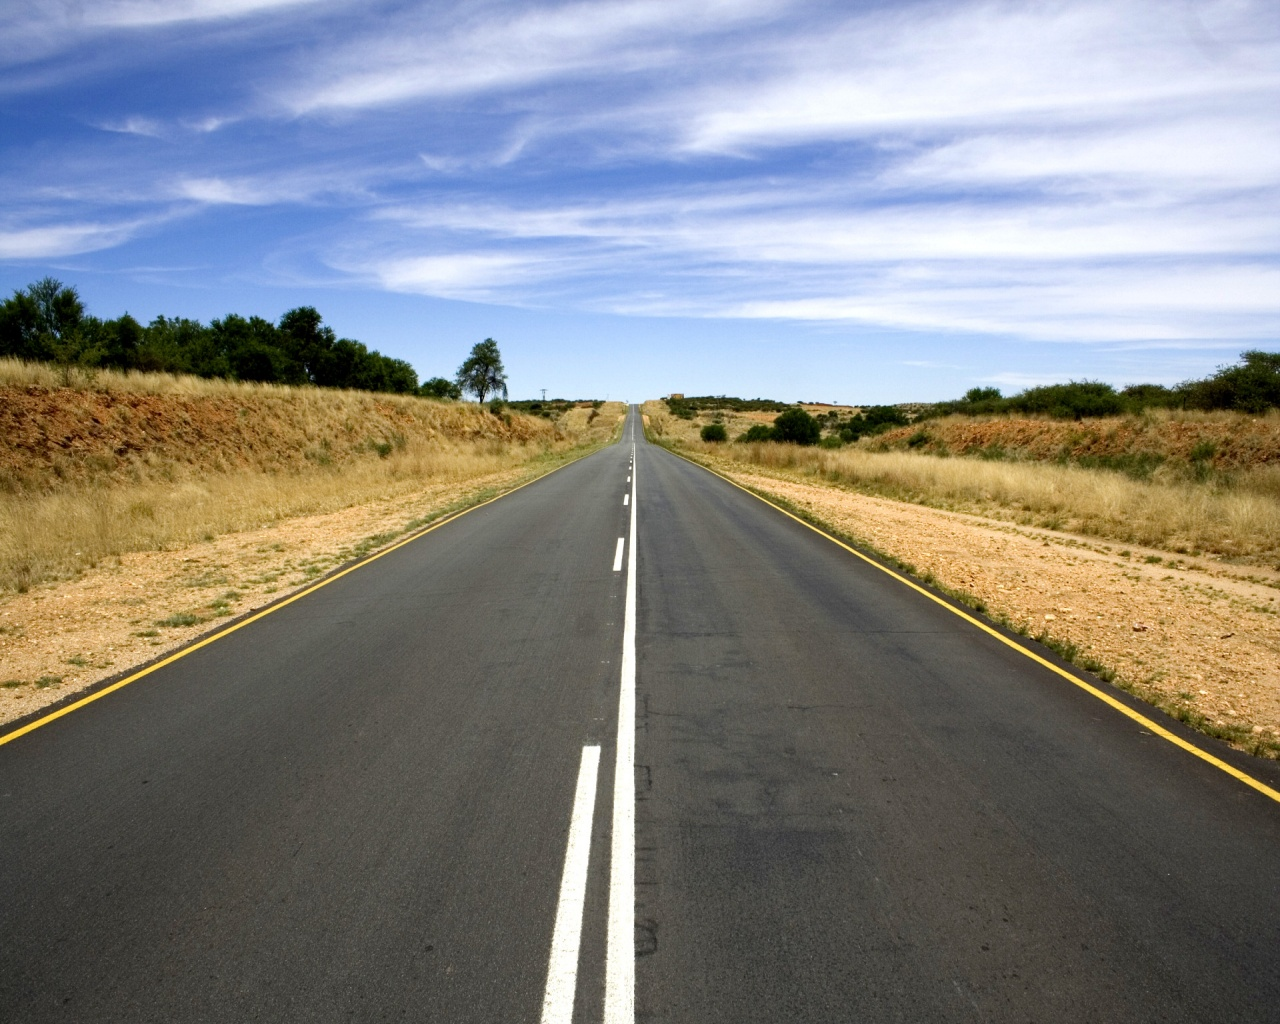 road wallpaper png